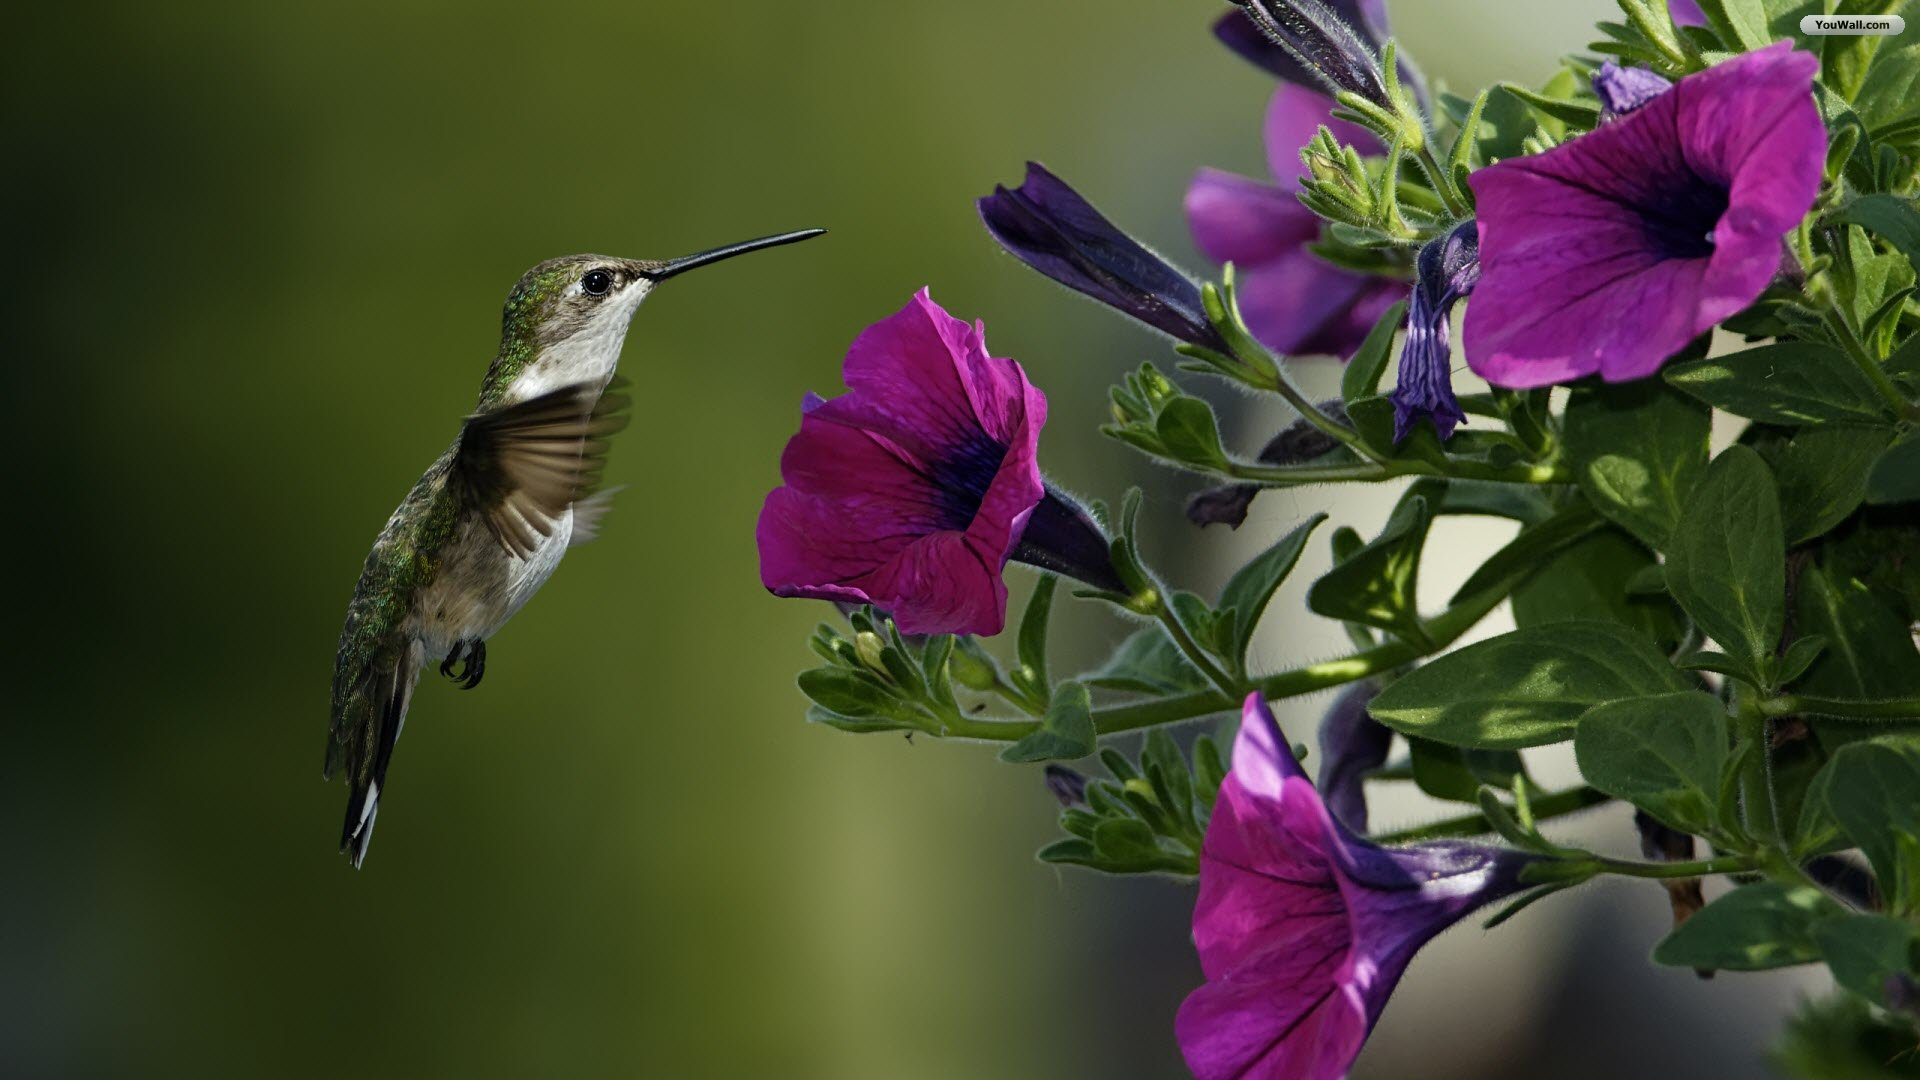 Download Image Images Birds Flowers Wallpaper 1920x1080 Full HD 1920x1080